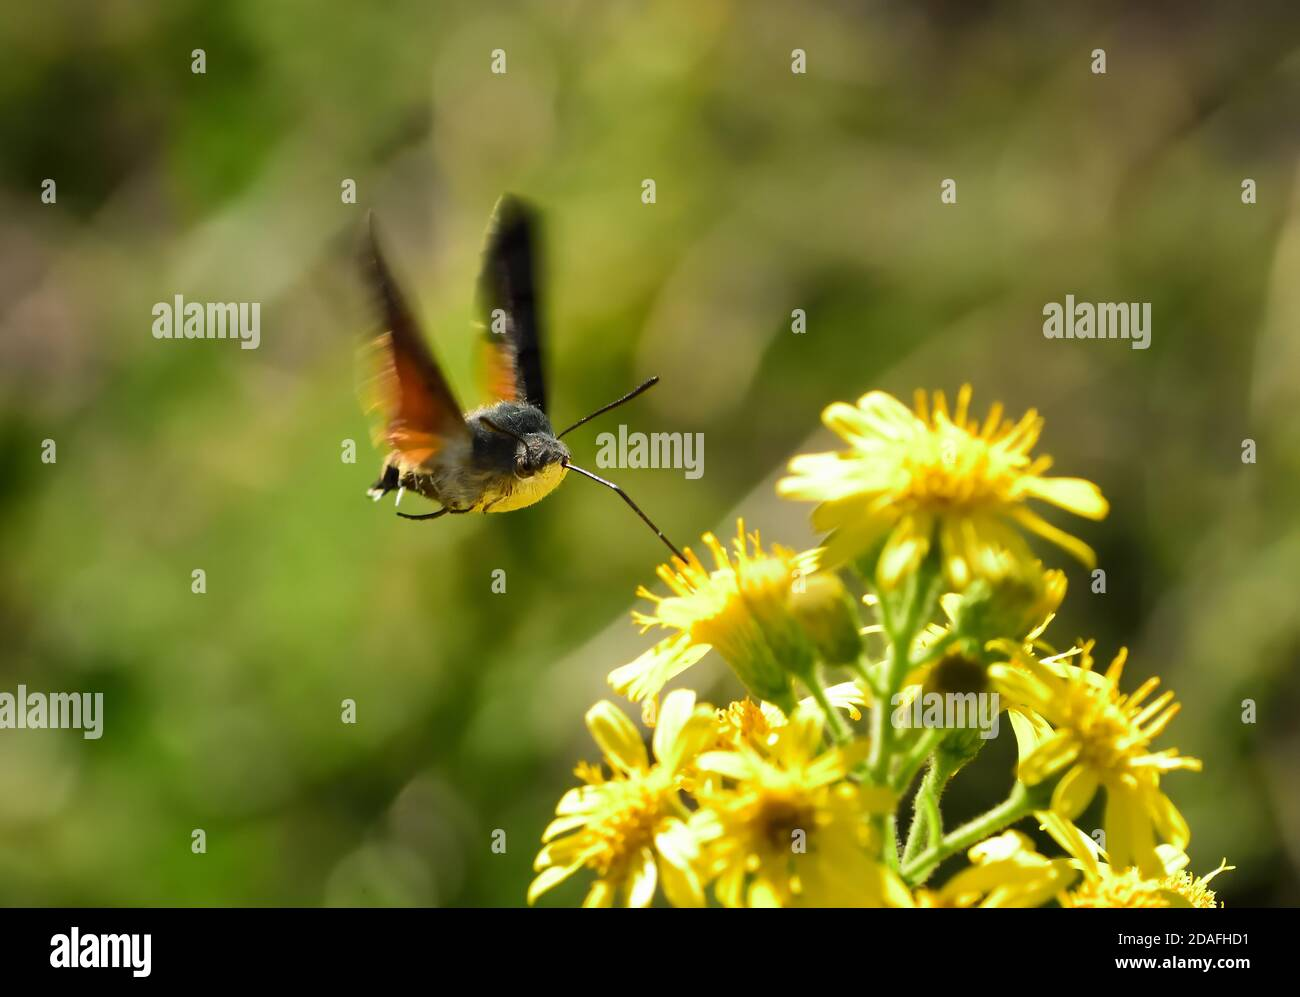 Isolated specimen of hawk-moth hummingbird (Macroglossum stellatarum). It flies fast from flower to flower and is also called the Sphinx Hummingbird. Stock Photo